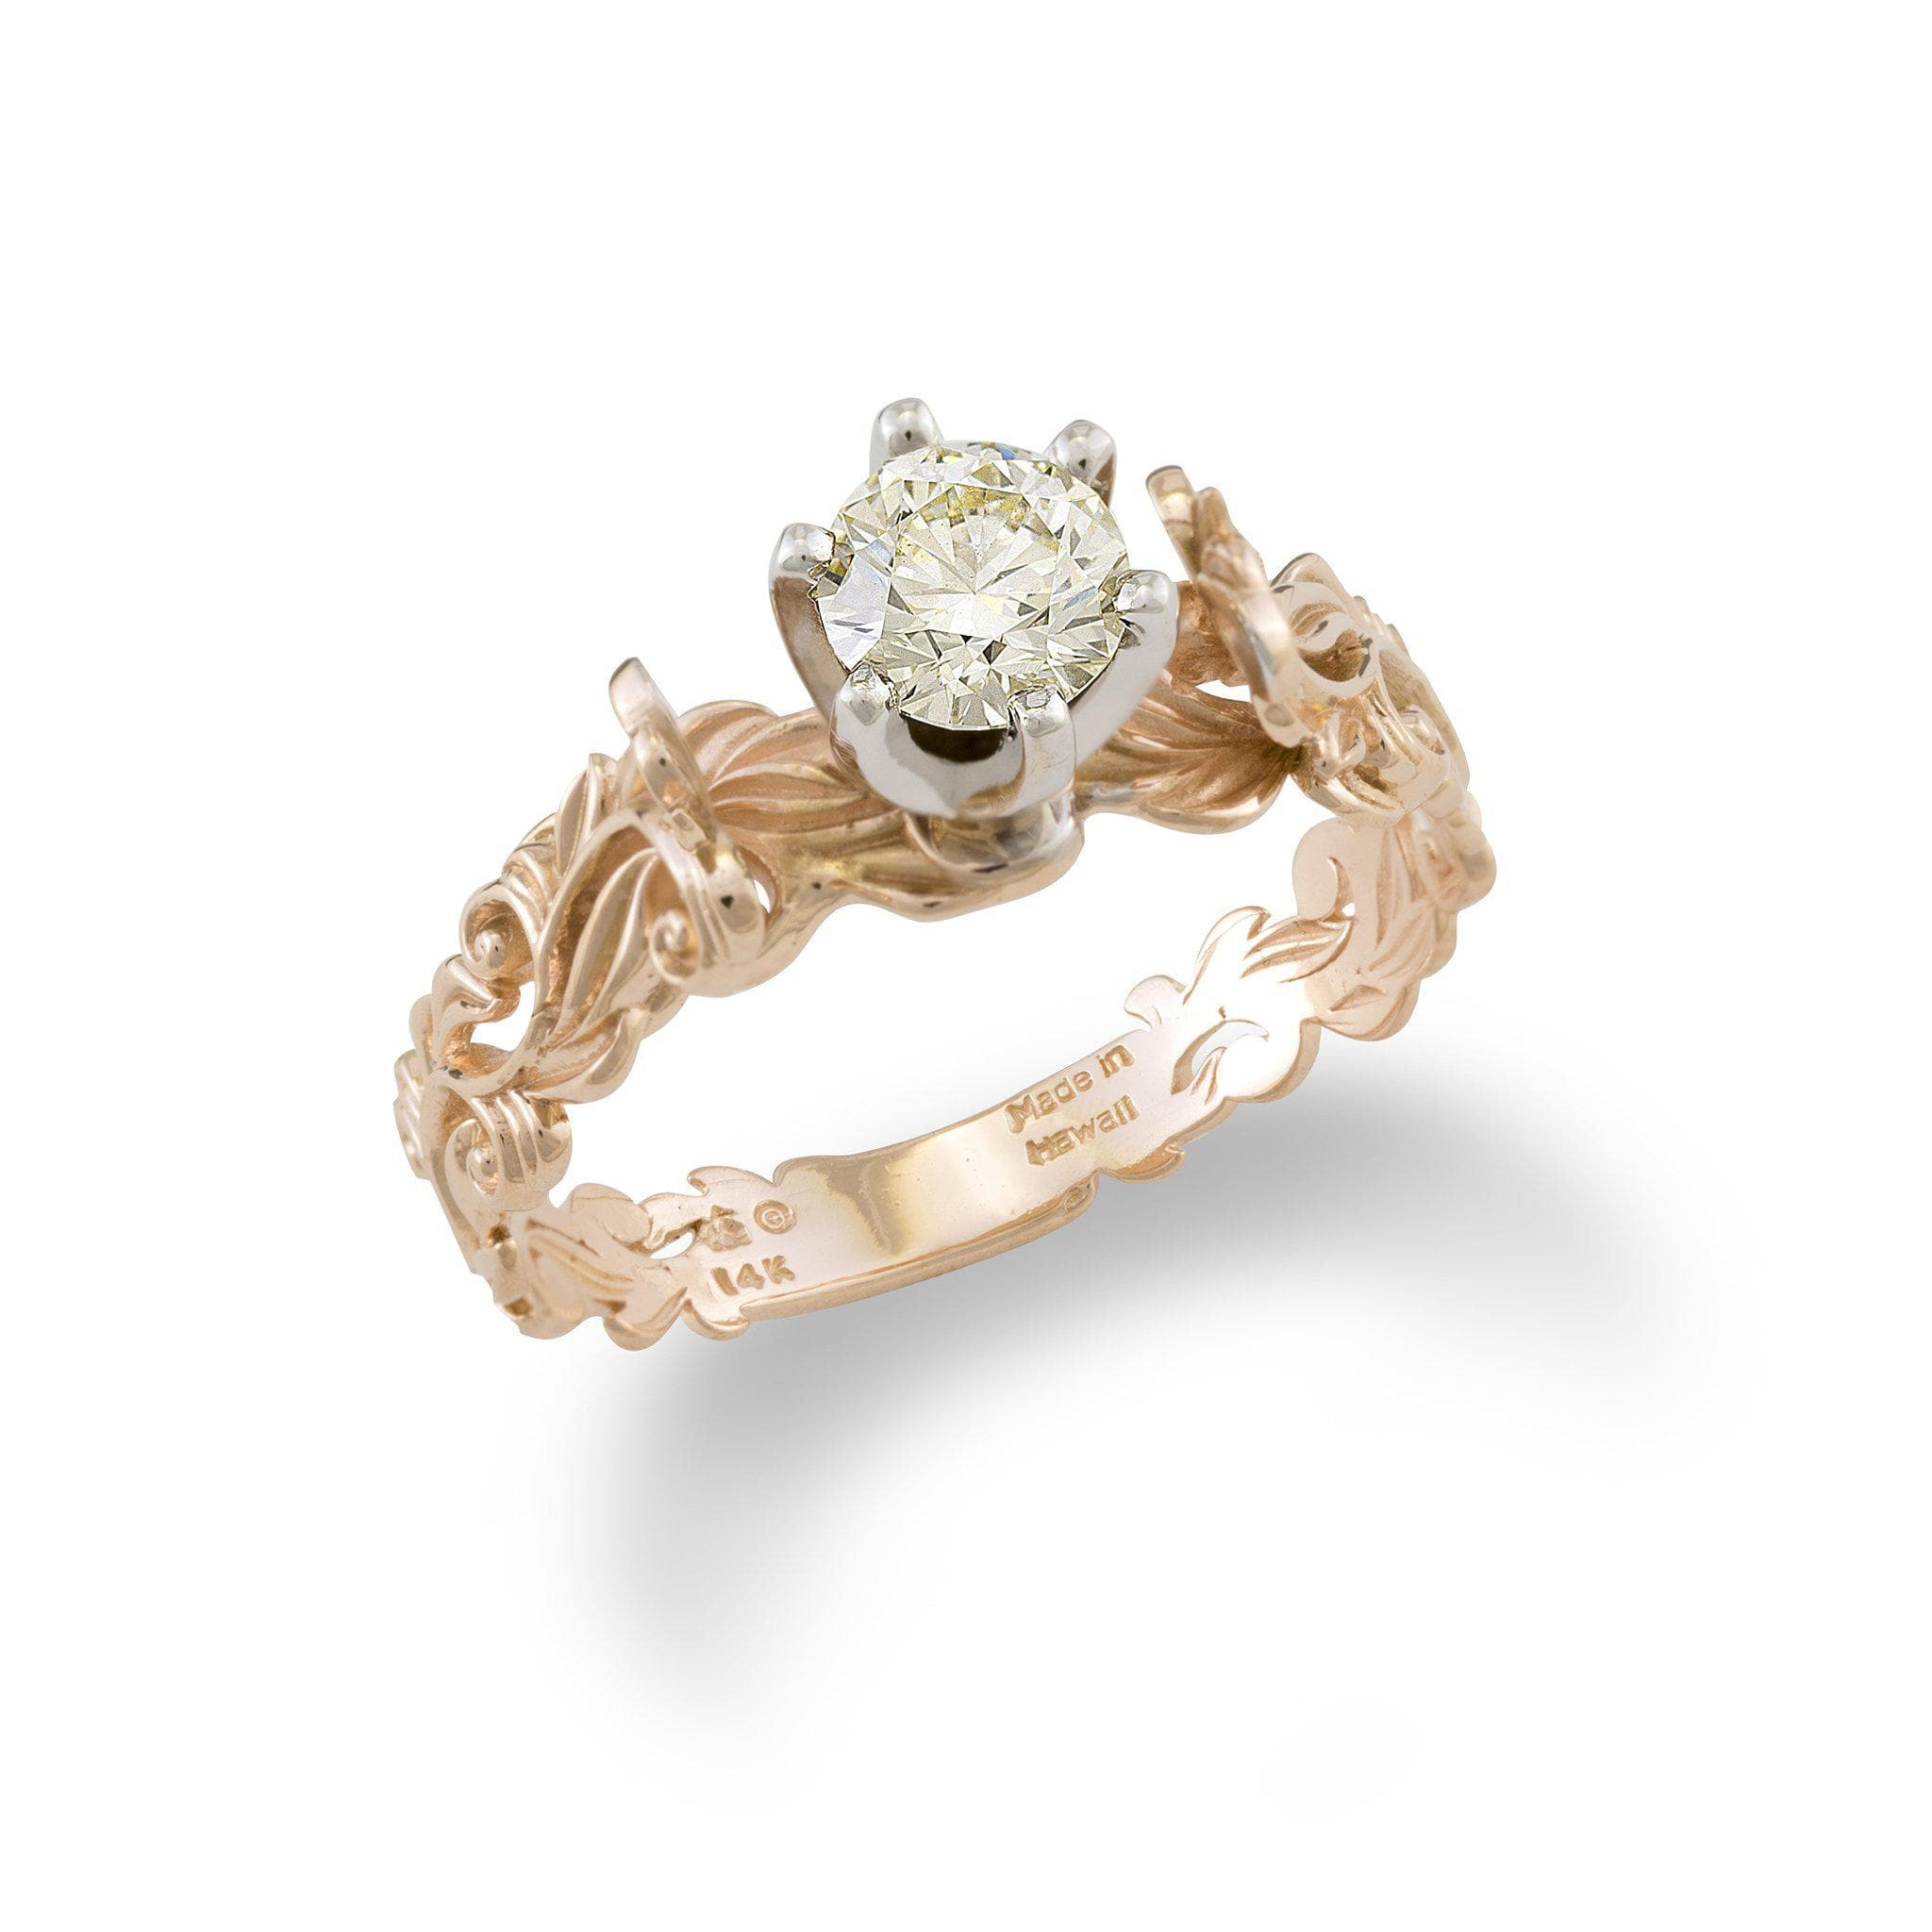 ring high basic stock rings pic with photo ideas wedding of free resolution beautiful gold